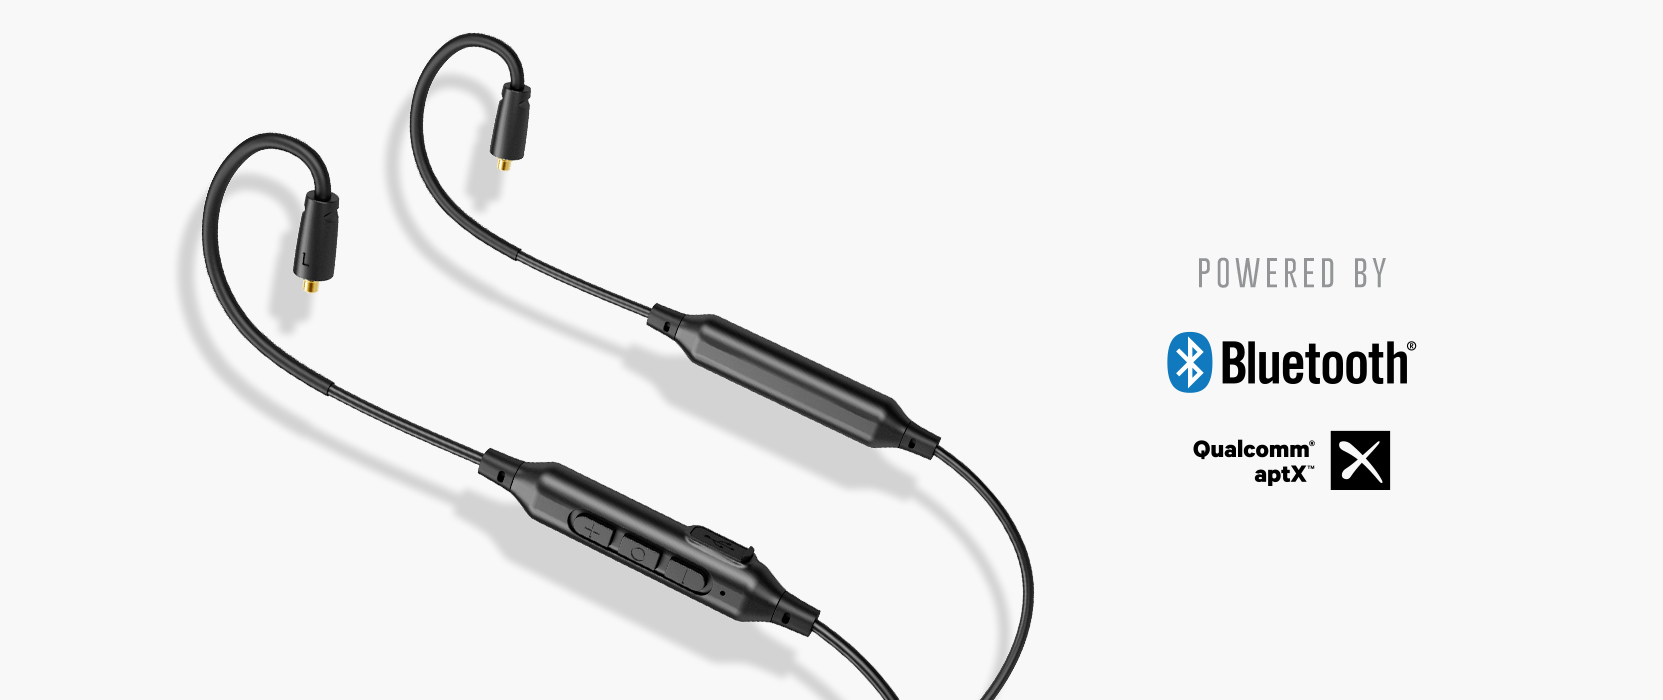 Mee Audio Btx1 Universal Bluetooth Wireless Mmcx Adapter Cable With Bt Phone Wiring Ergonomic Design Built In Flex Wire Earhooks Ensures A Secure Fit For All Activities So You Can Enjoy Freedom From Wires